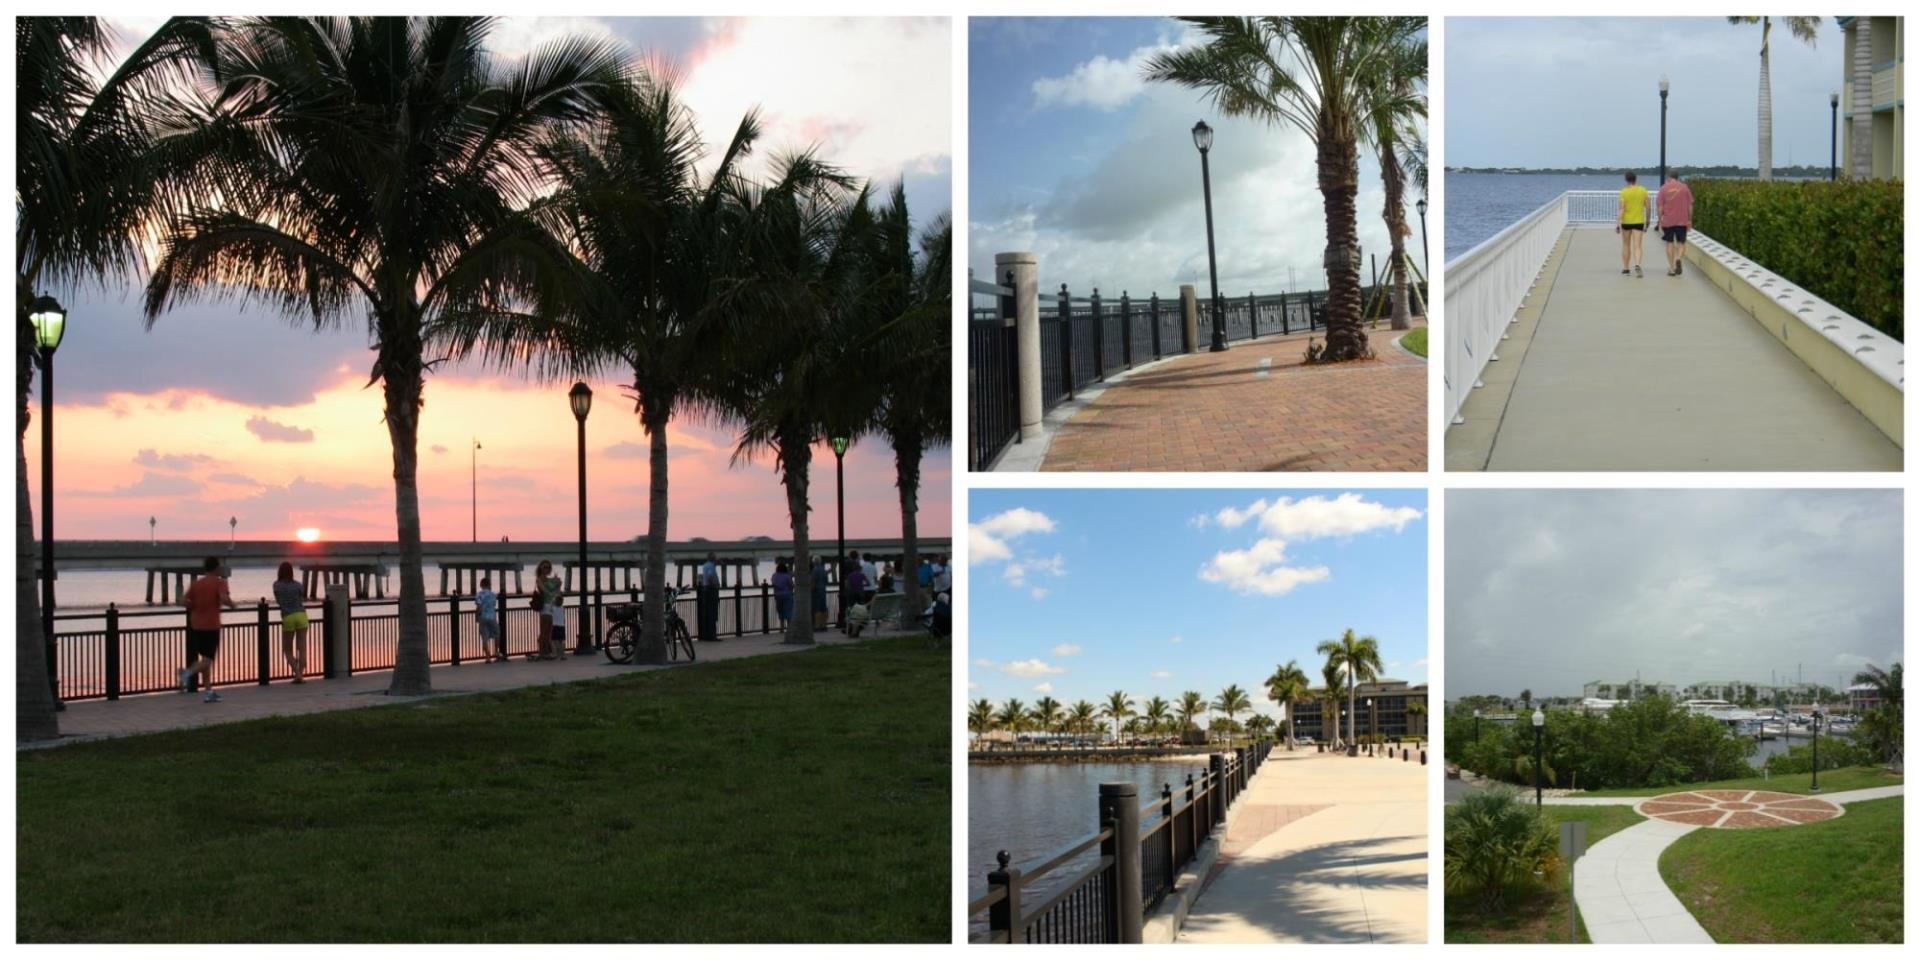 PicMonkey Collage - Harborwalk West